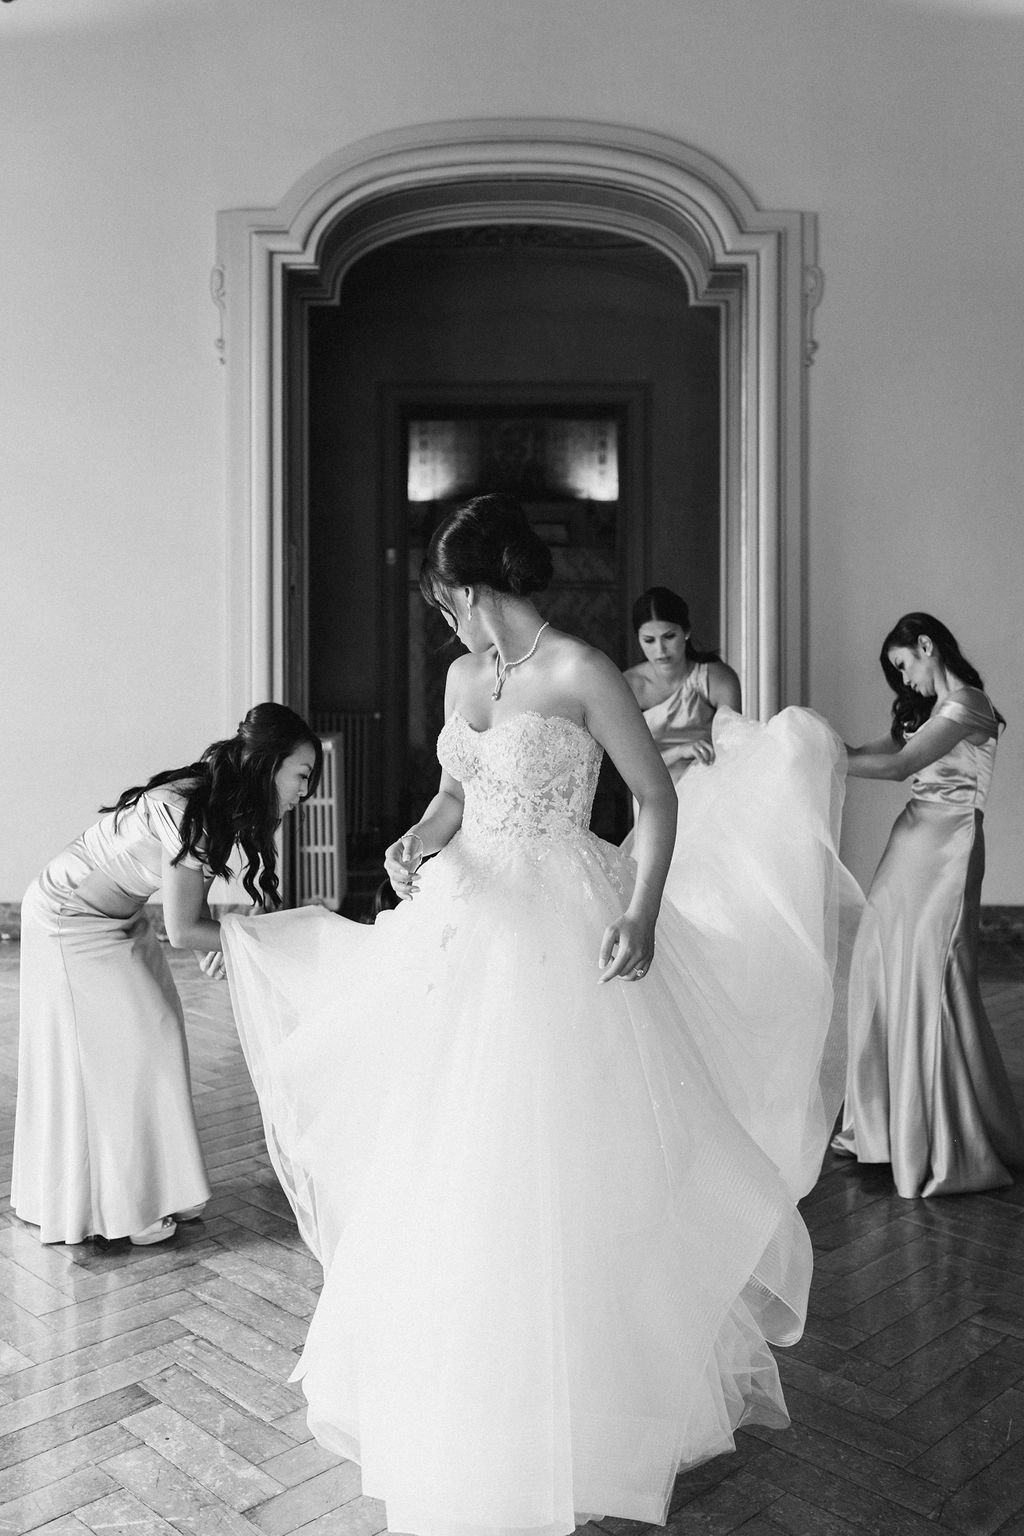 villa-erba-lake-como-wedding-photographer-roberta-facchini-photography-39